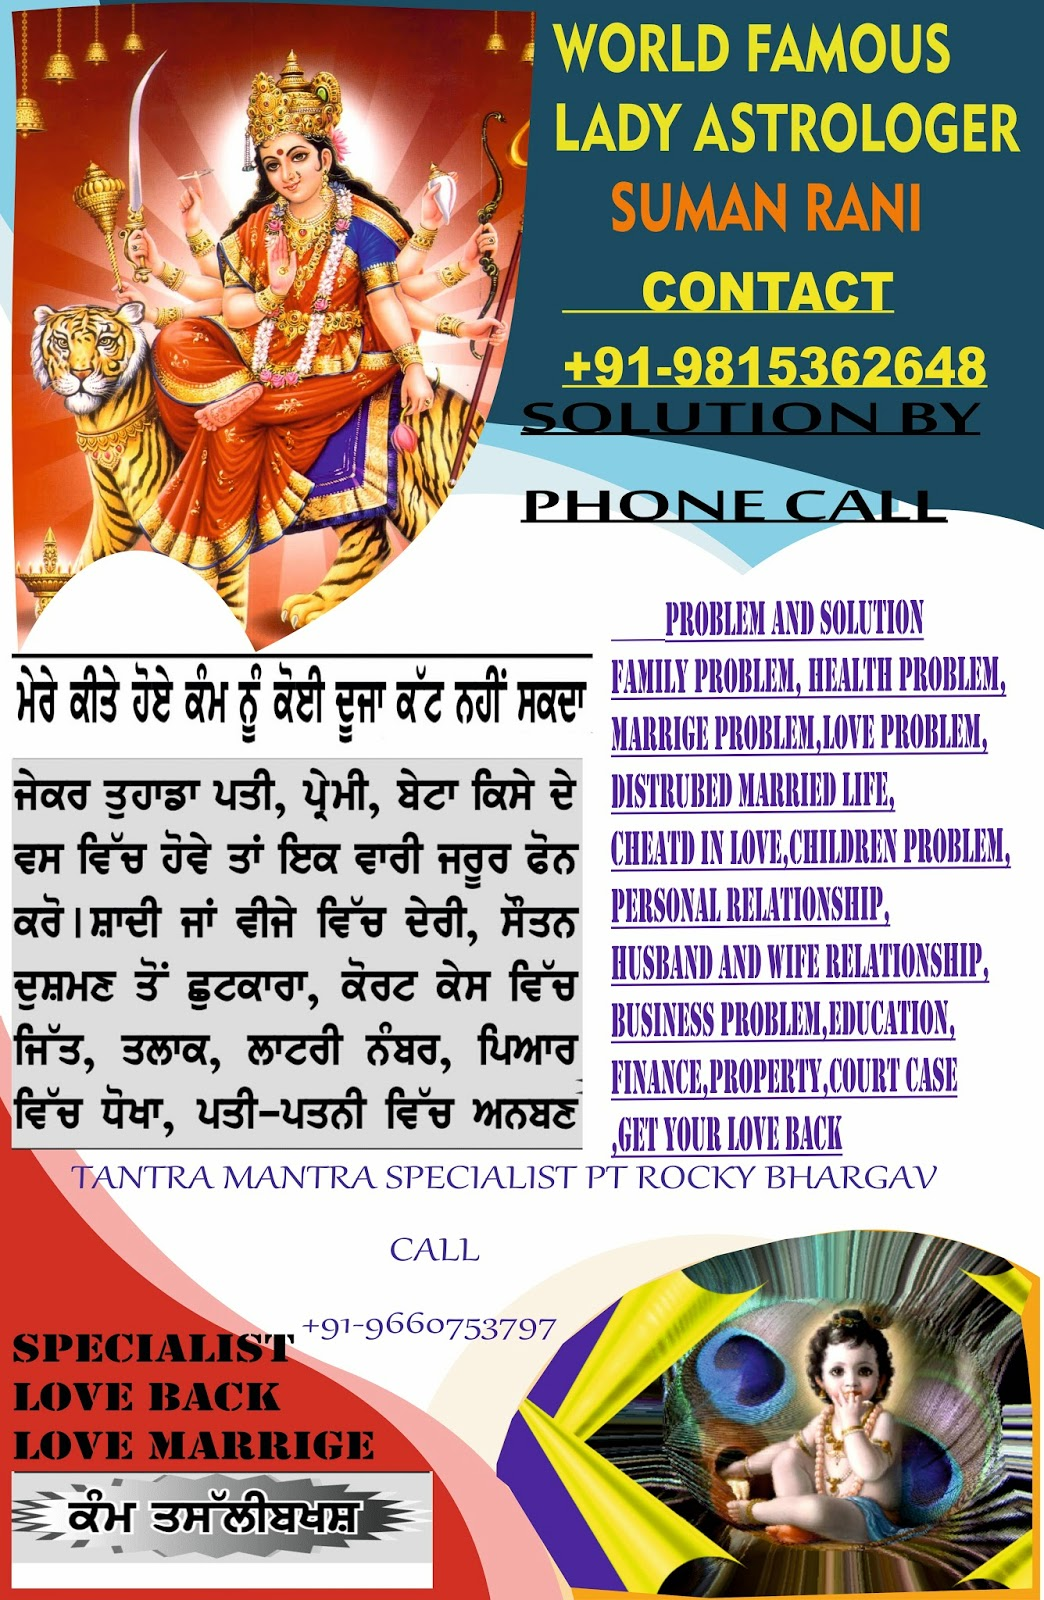 Free astrology service by astrologer rahul sharma: world famous lady